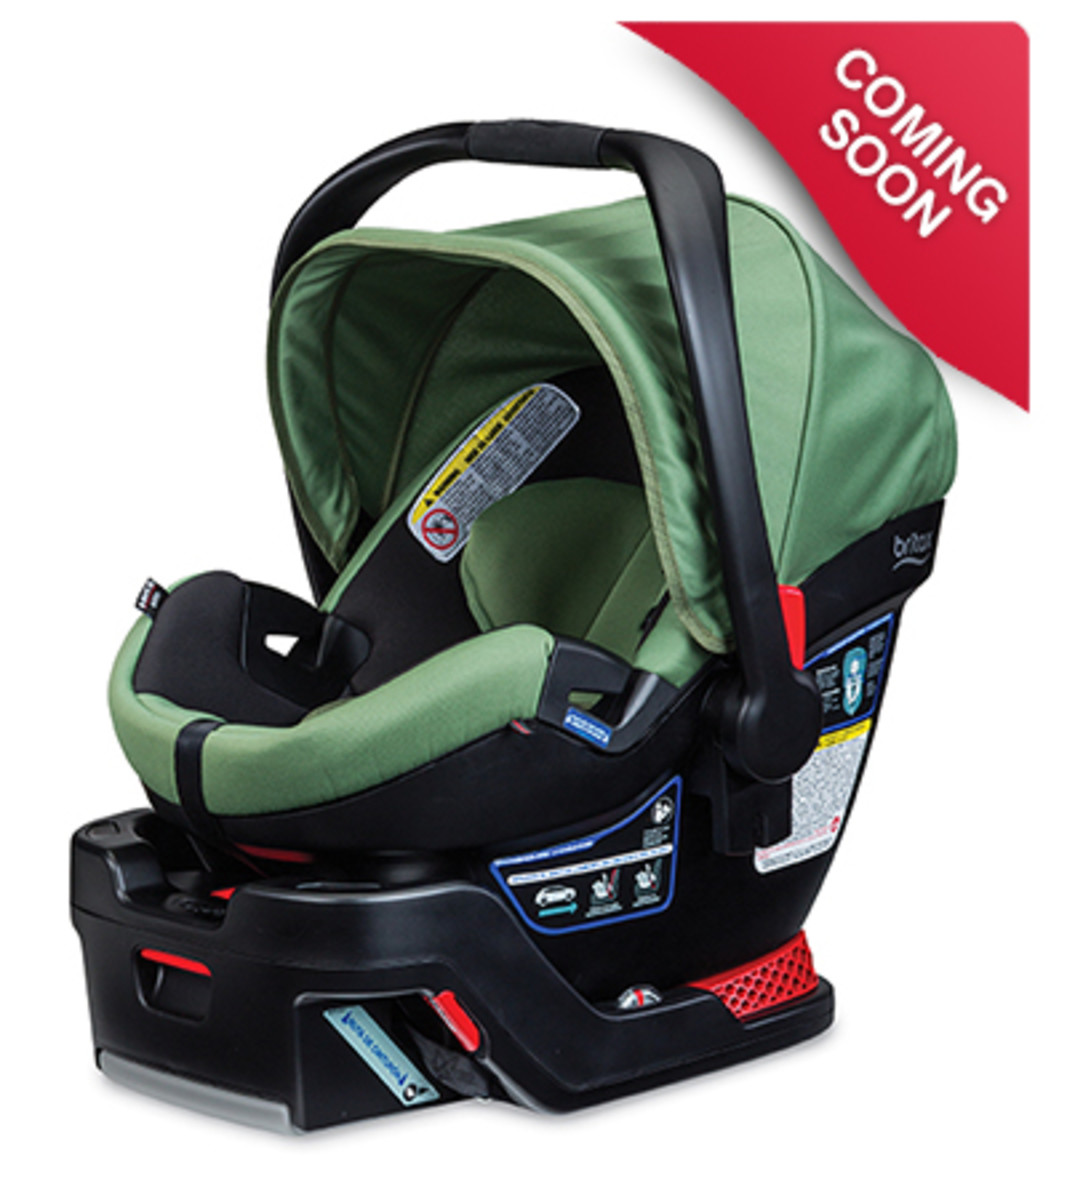 britax-bs35-elite-1158-c87-l